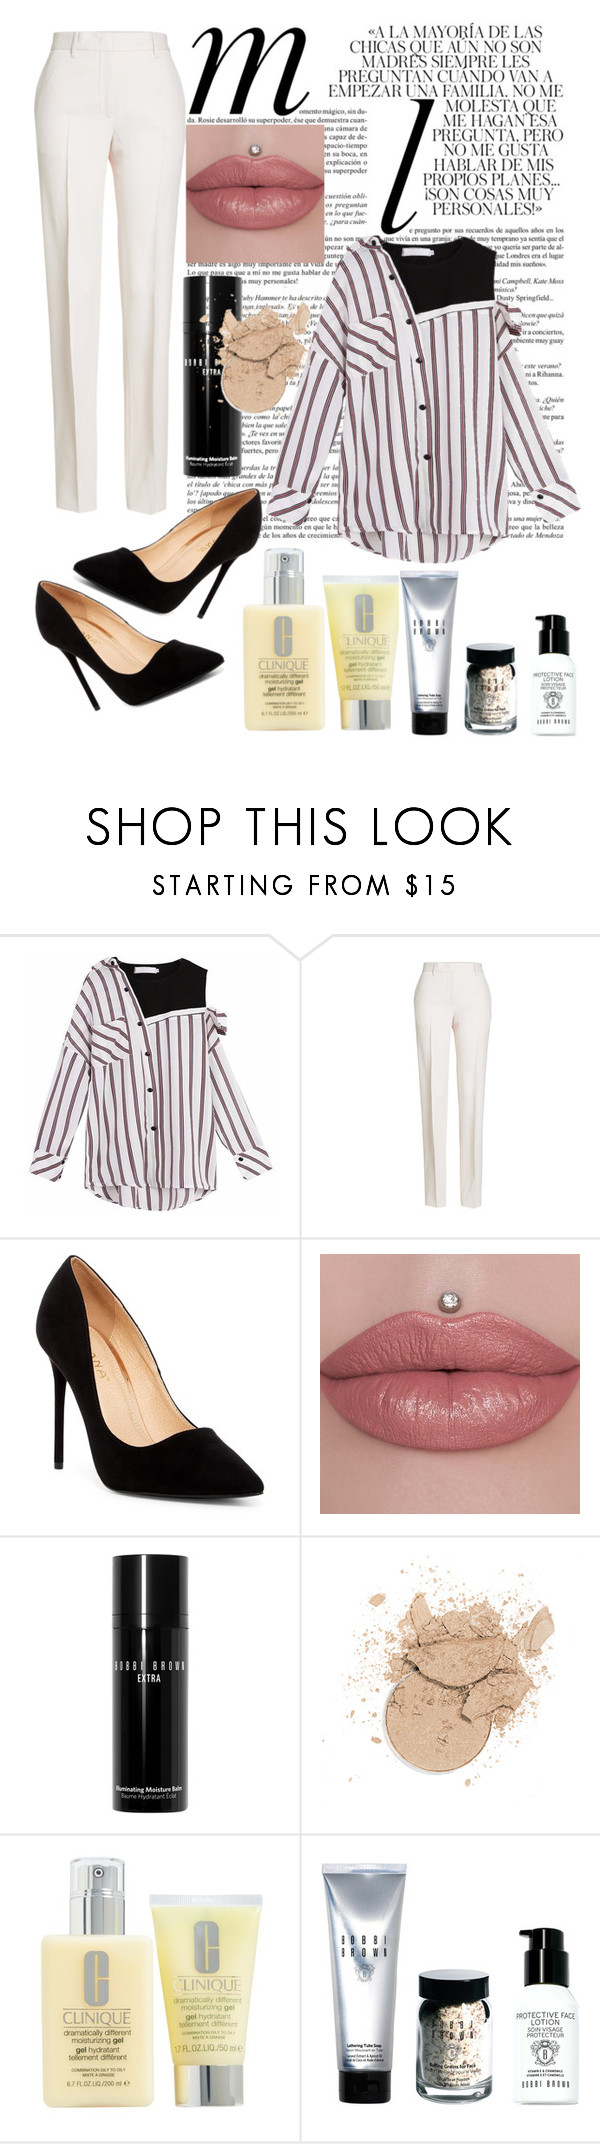 """Let's go gurls 😏"" by pmicla ❤ liked on Polyvore featuring Whiteley, Jil Sander, Liliana, Bobbi Brown Cosmetics and Clinique"